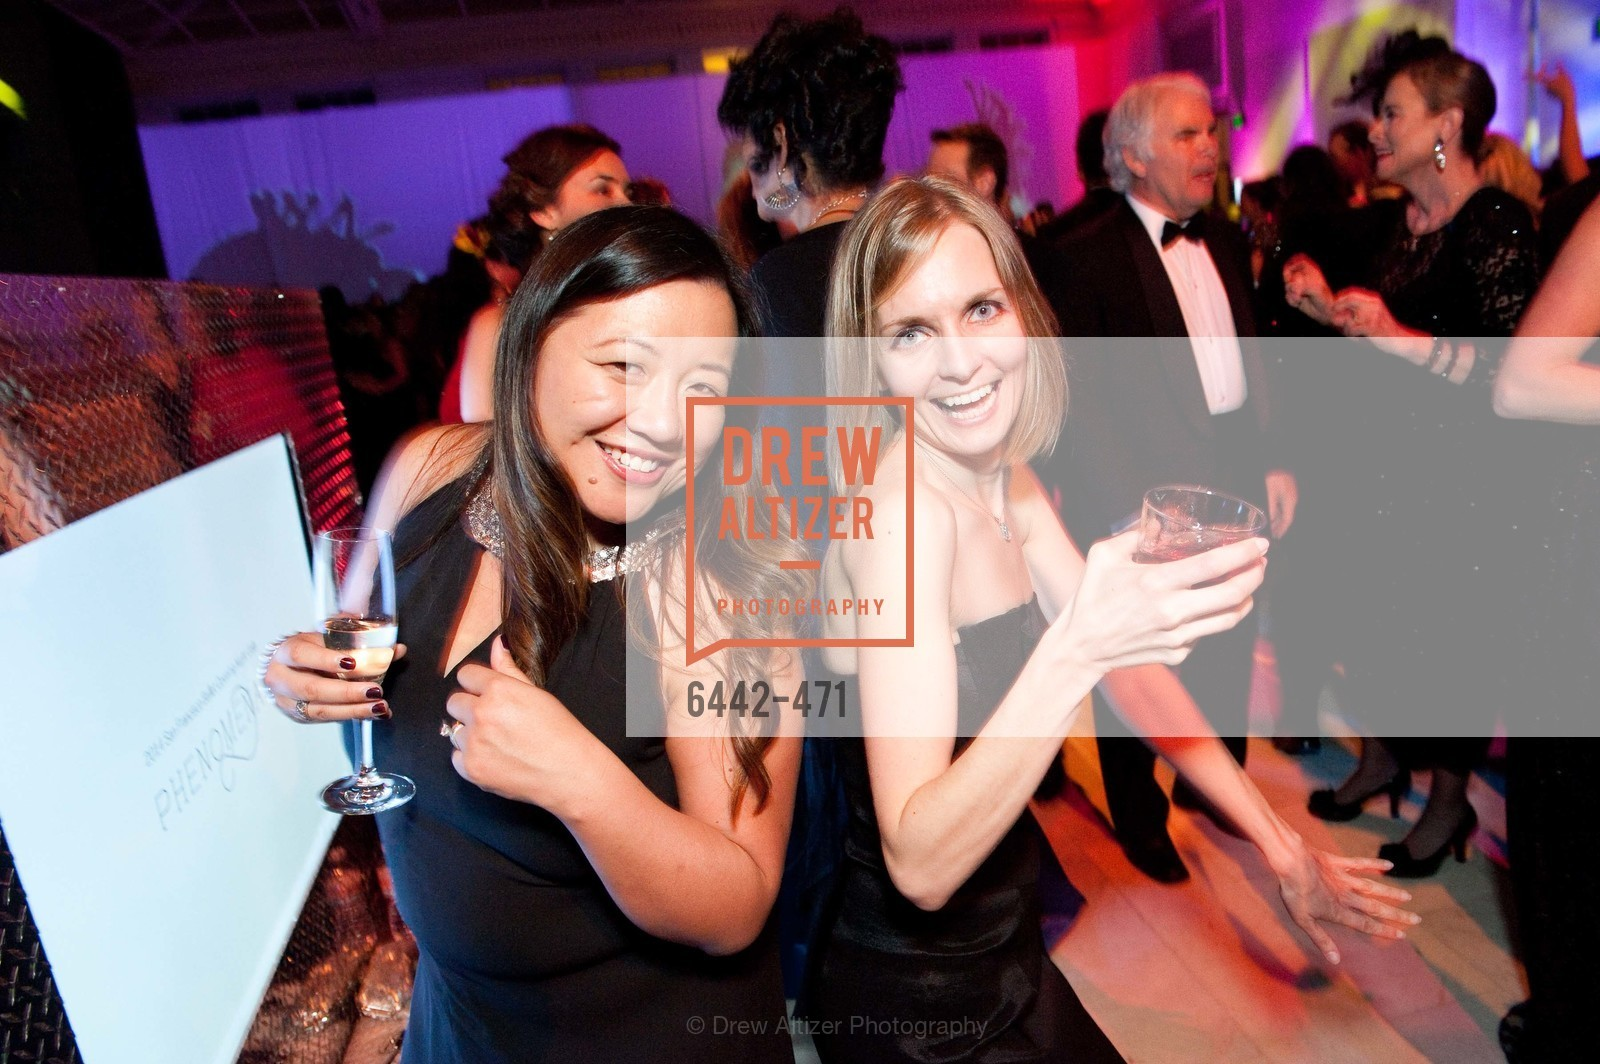 Extras, SAN FRANCISCO BALLET Opening Night Gala: PHENOMENAL - After Party, January 22nd, 2014, Photo,Drew Altizer, Drew Altizer Photography, full-service agency, private events, San Francisco photographer, photographer california